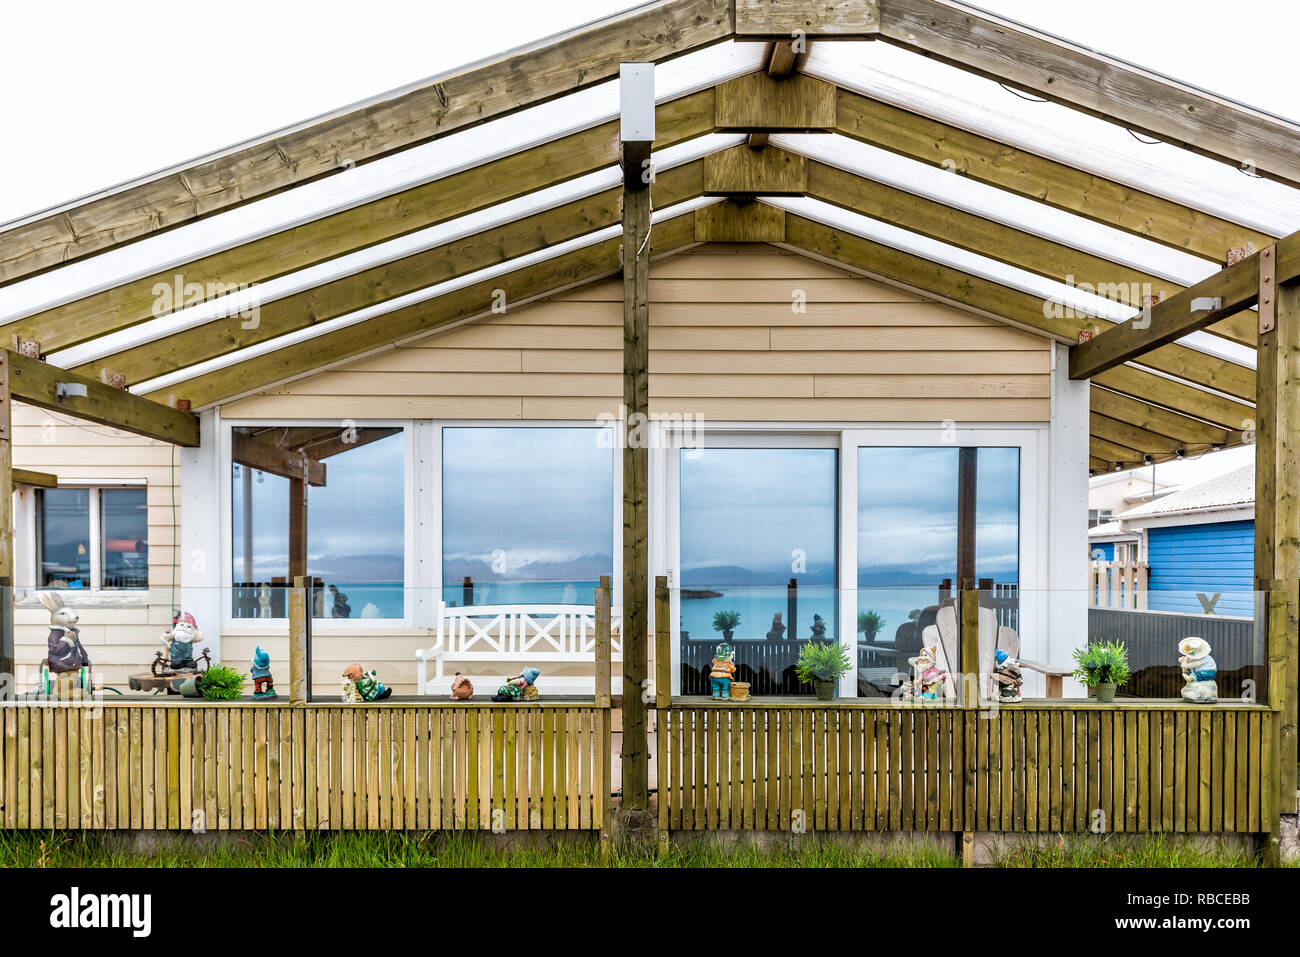 Hofn, Iceland - June 15, 2018: Closeup of wooden house in small fishing village with reflection of blue fjord river water - Stock Image